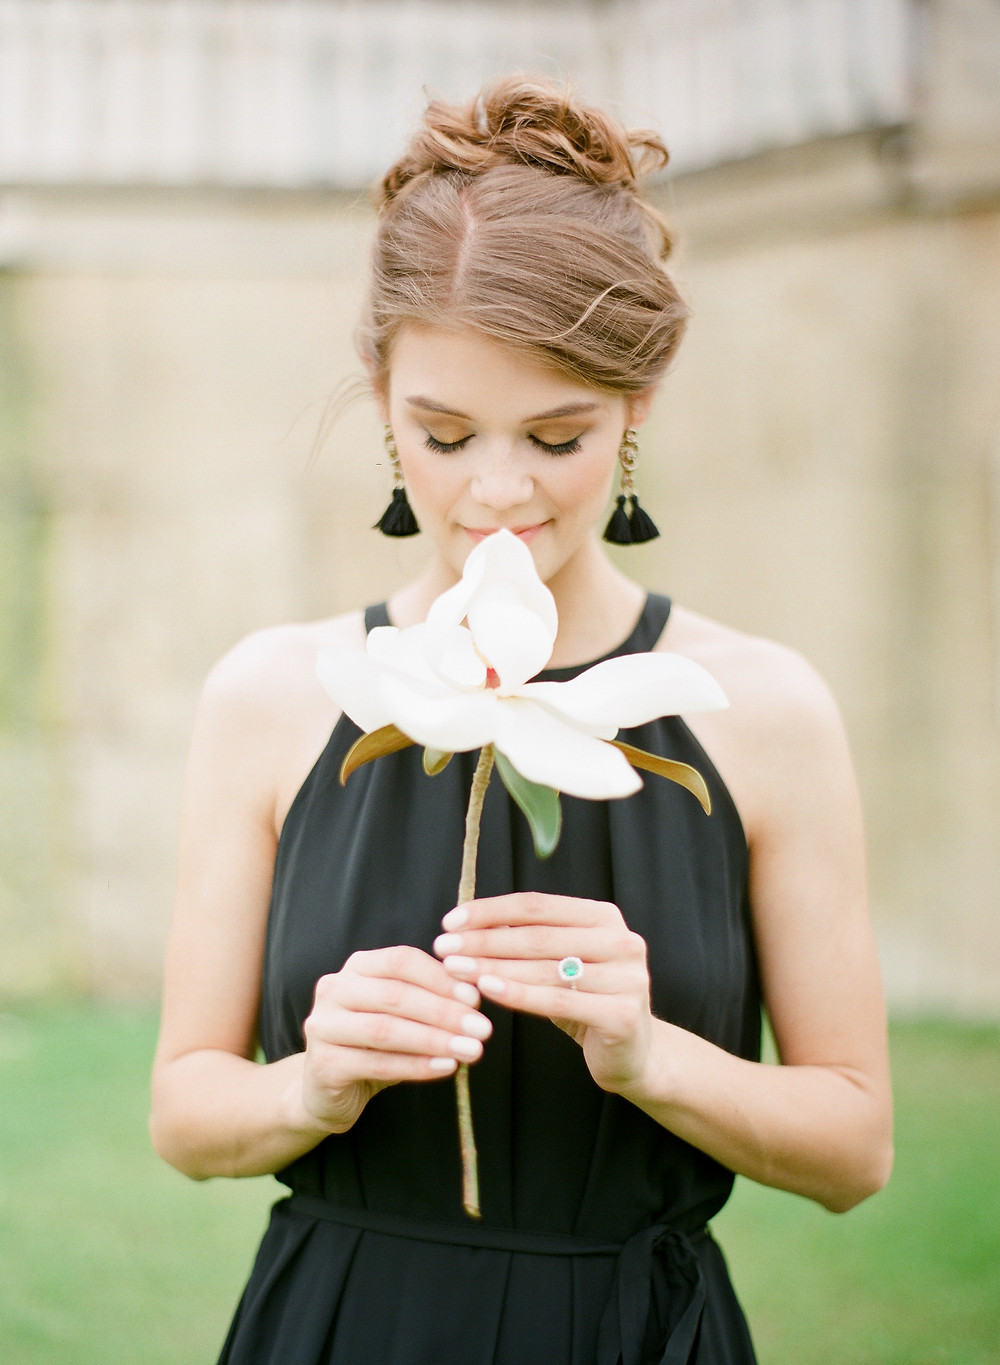 Woman looking down holding a single magnolia flower wearing emerald engagement ring